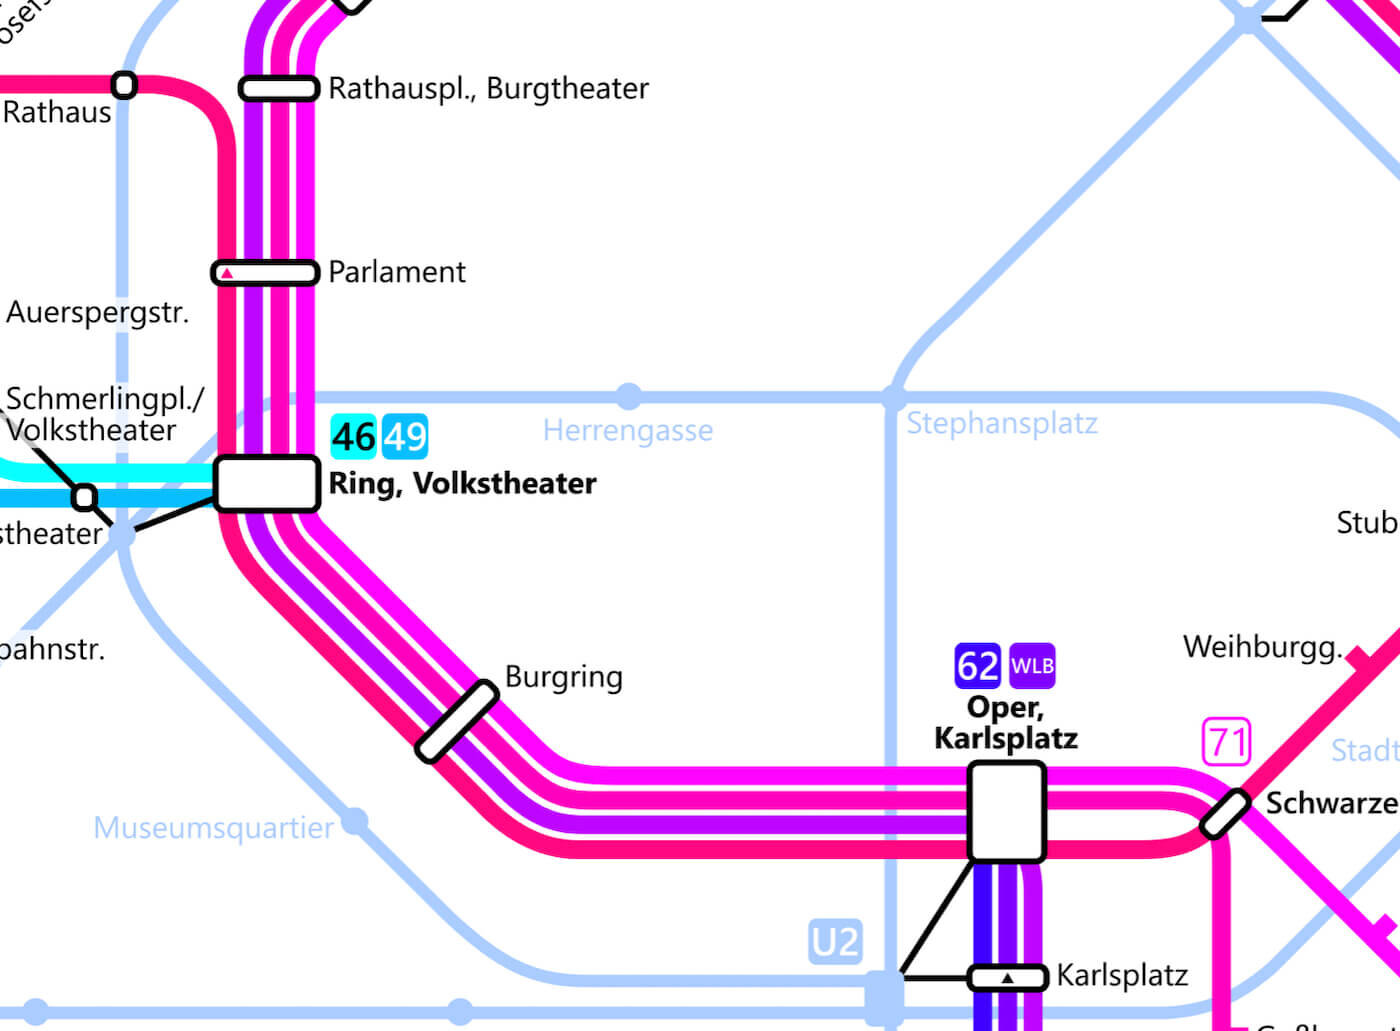 Hofburg Palace Closest Tram Stops on Ringstrasse - Burgring and Ring/Volkstheater